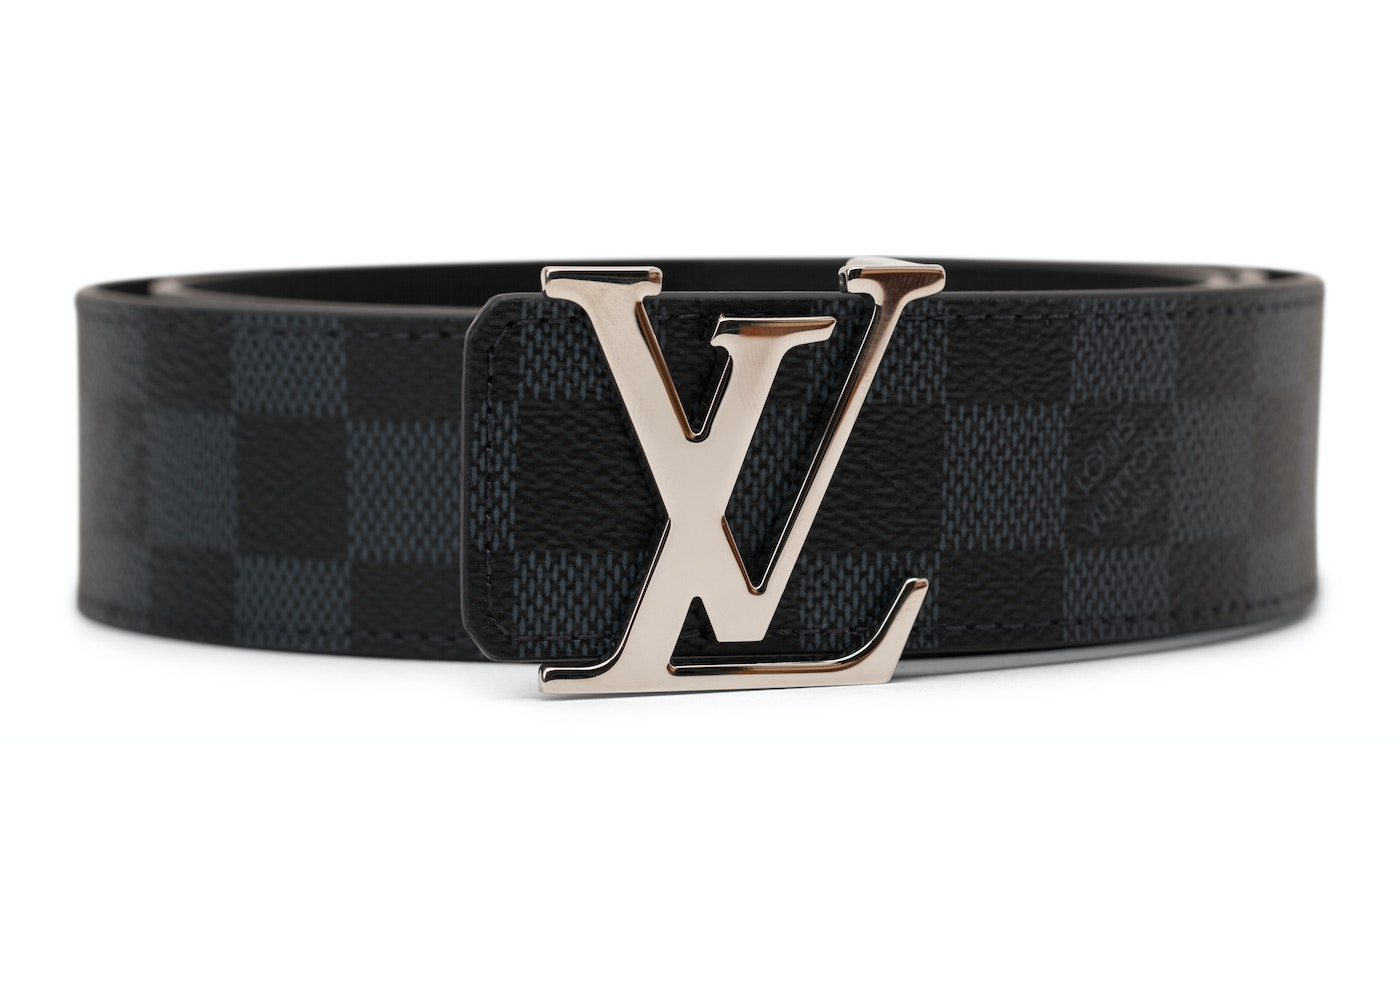 4d0fc7bbb381 Louis Vuitton Initiales Belt Damier Cobalt Blue Black. Damier Cobalt  Blue Black